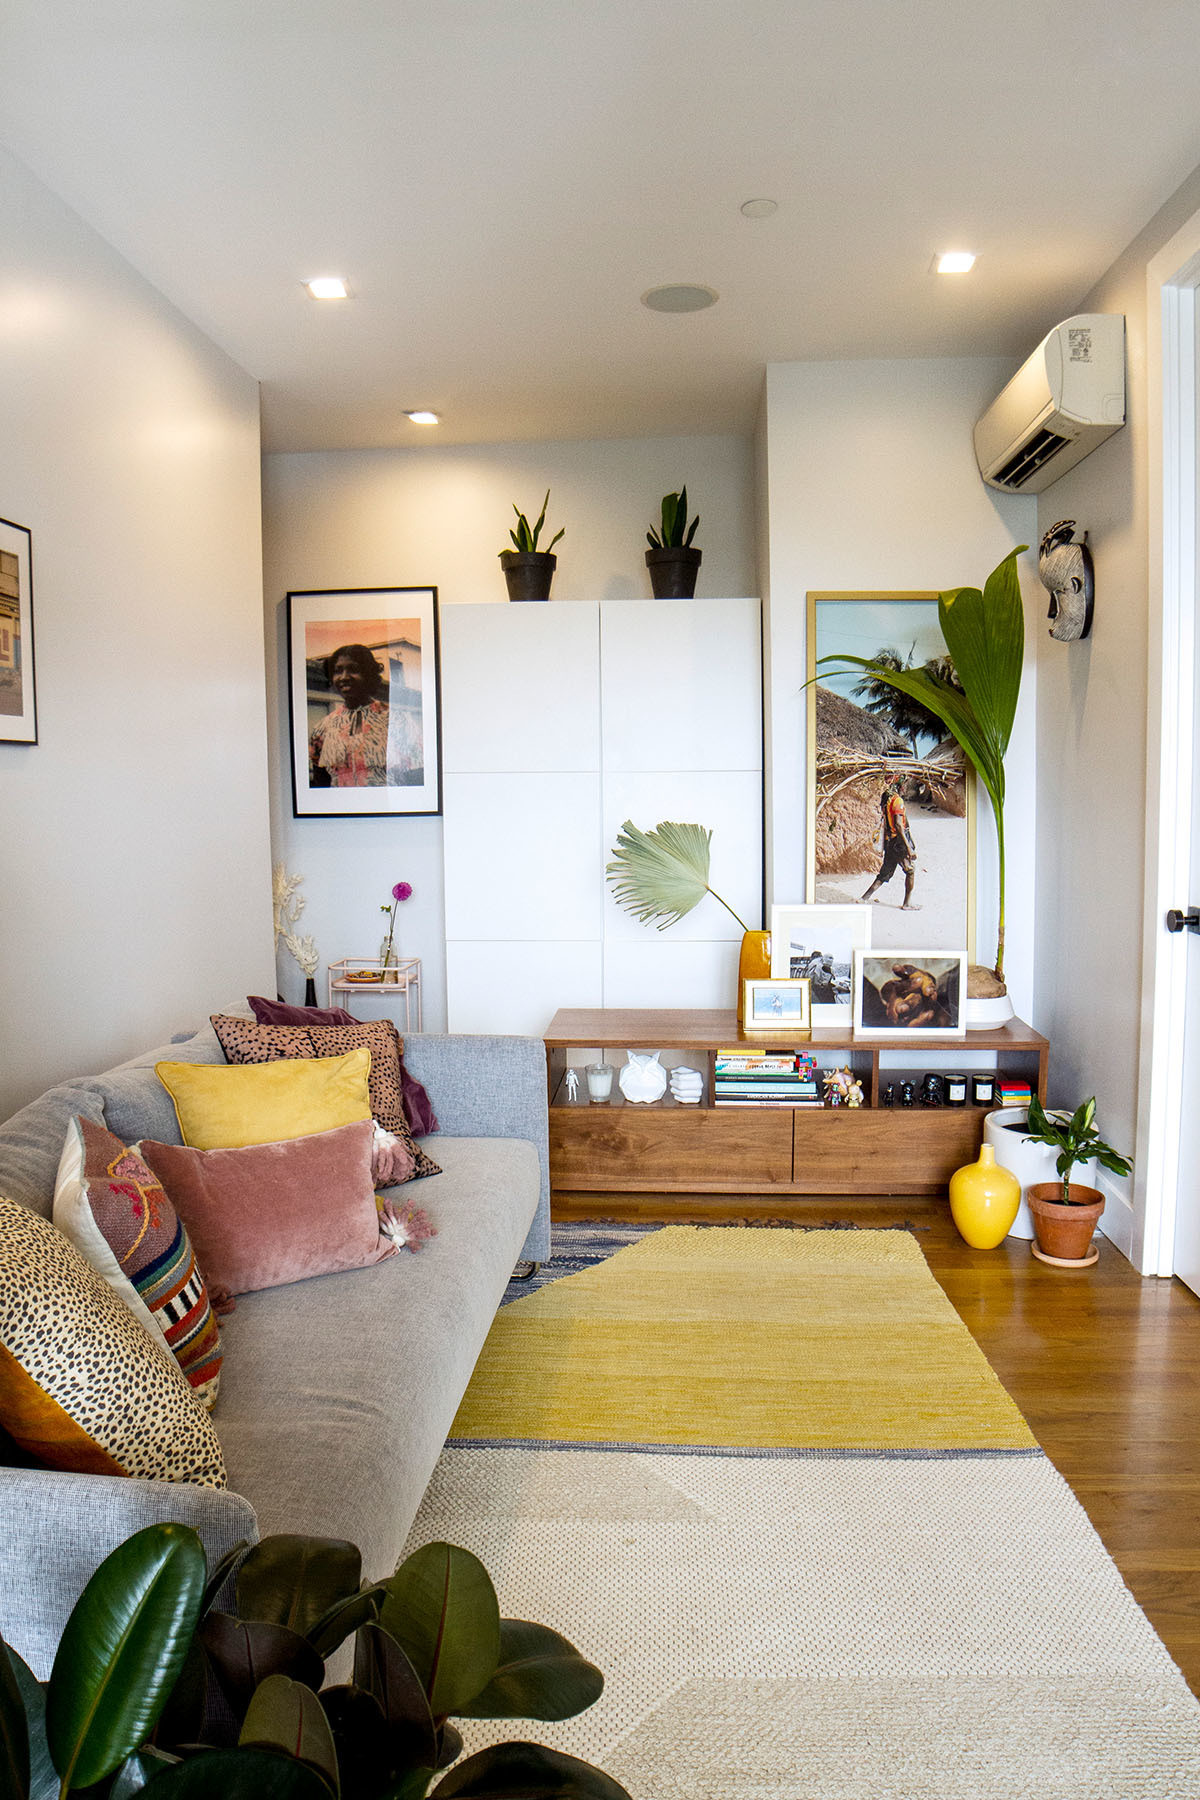 The designer duo outfit their tiny living space with aCB2 sofa,West Elm rug, and assortedIKEA finds.